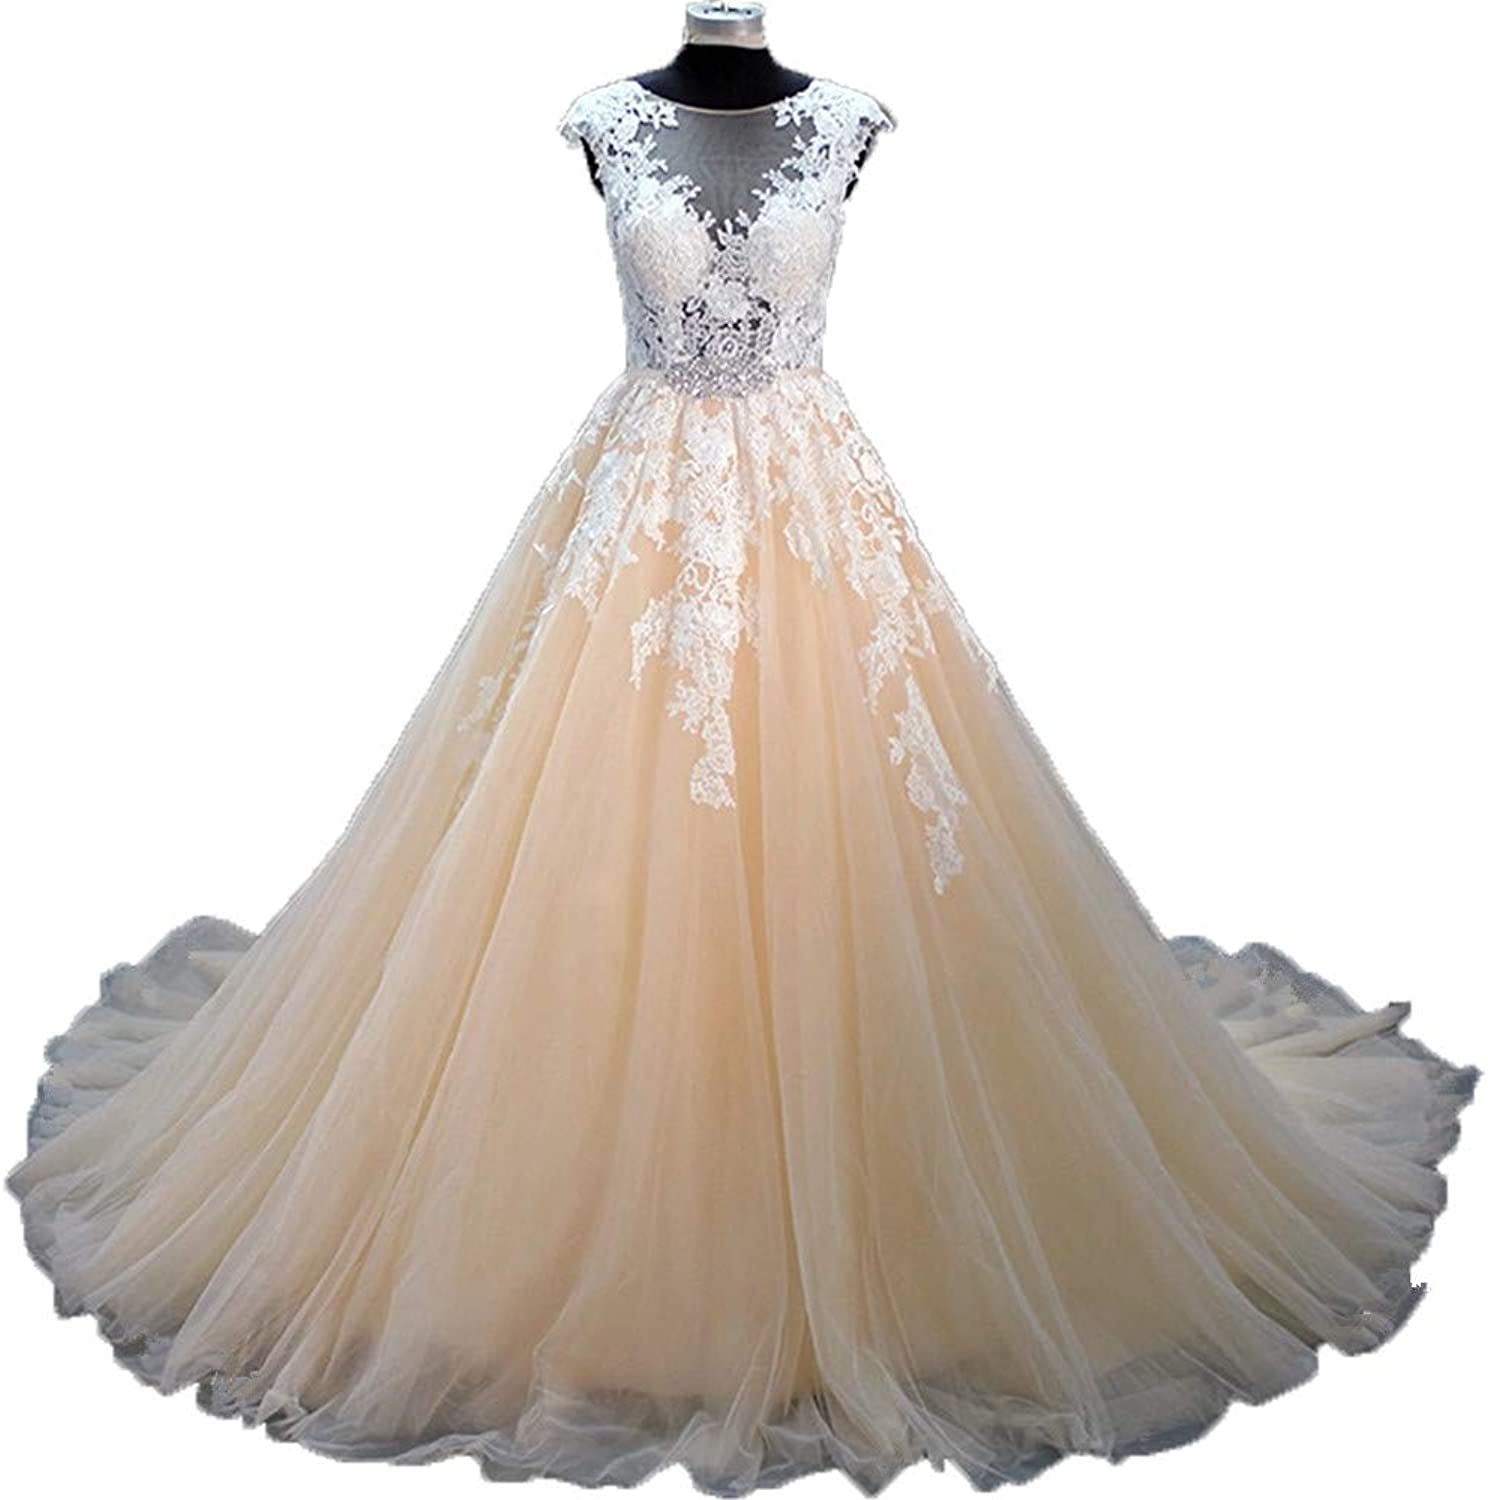 Huifany Wedding Dresses Ball Gown Scoop Neck Cap Sleeves Appliques Bridal Gowns